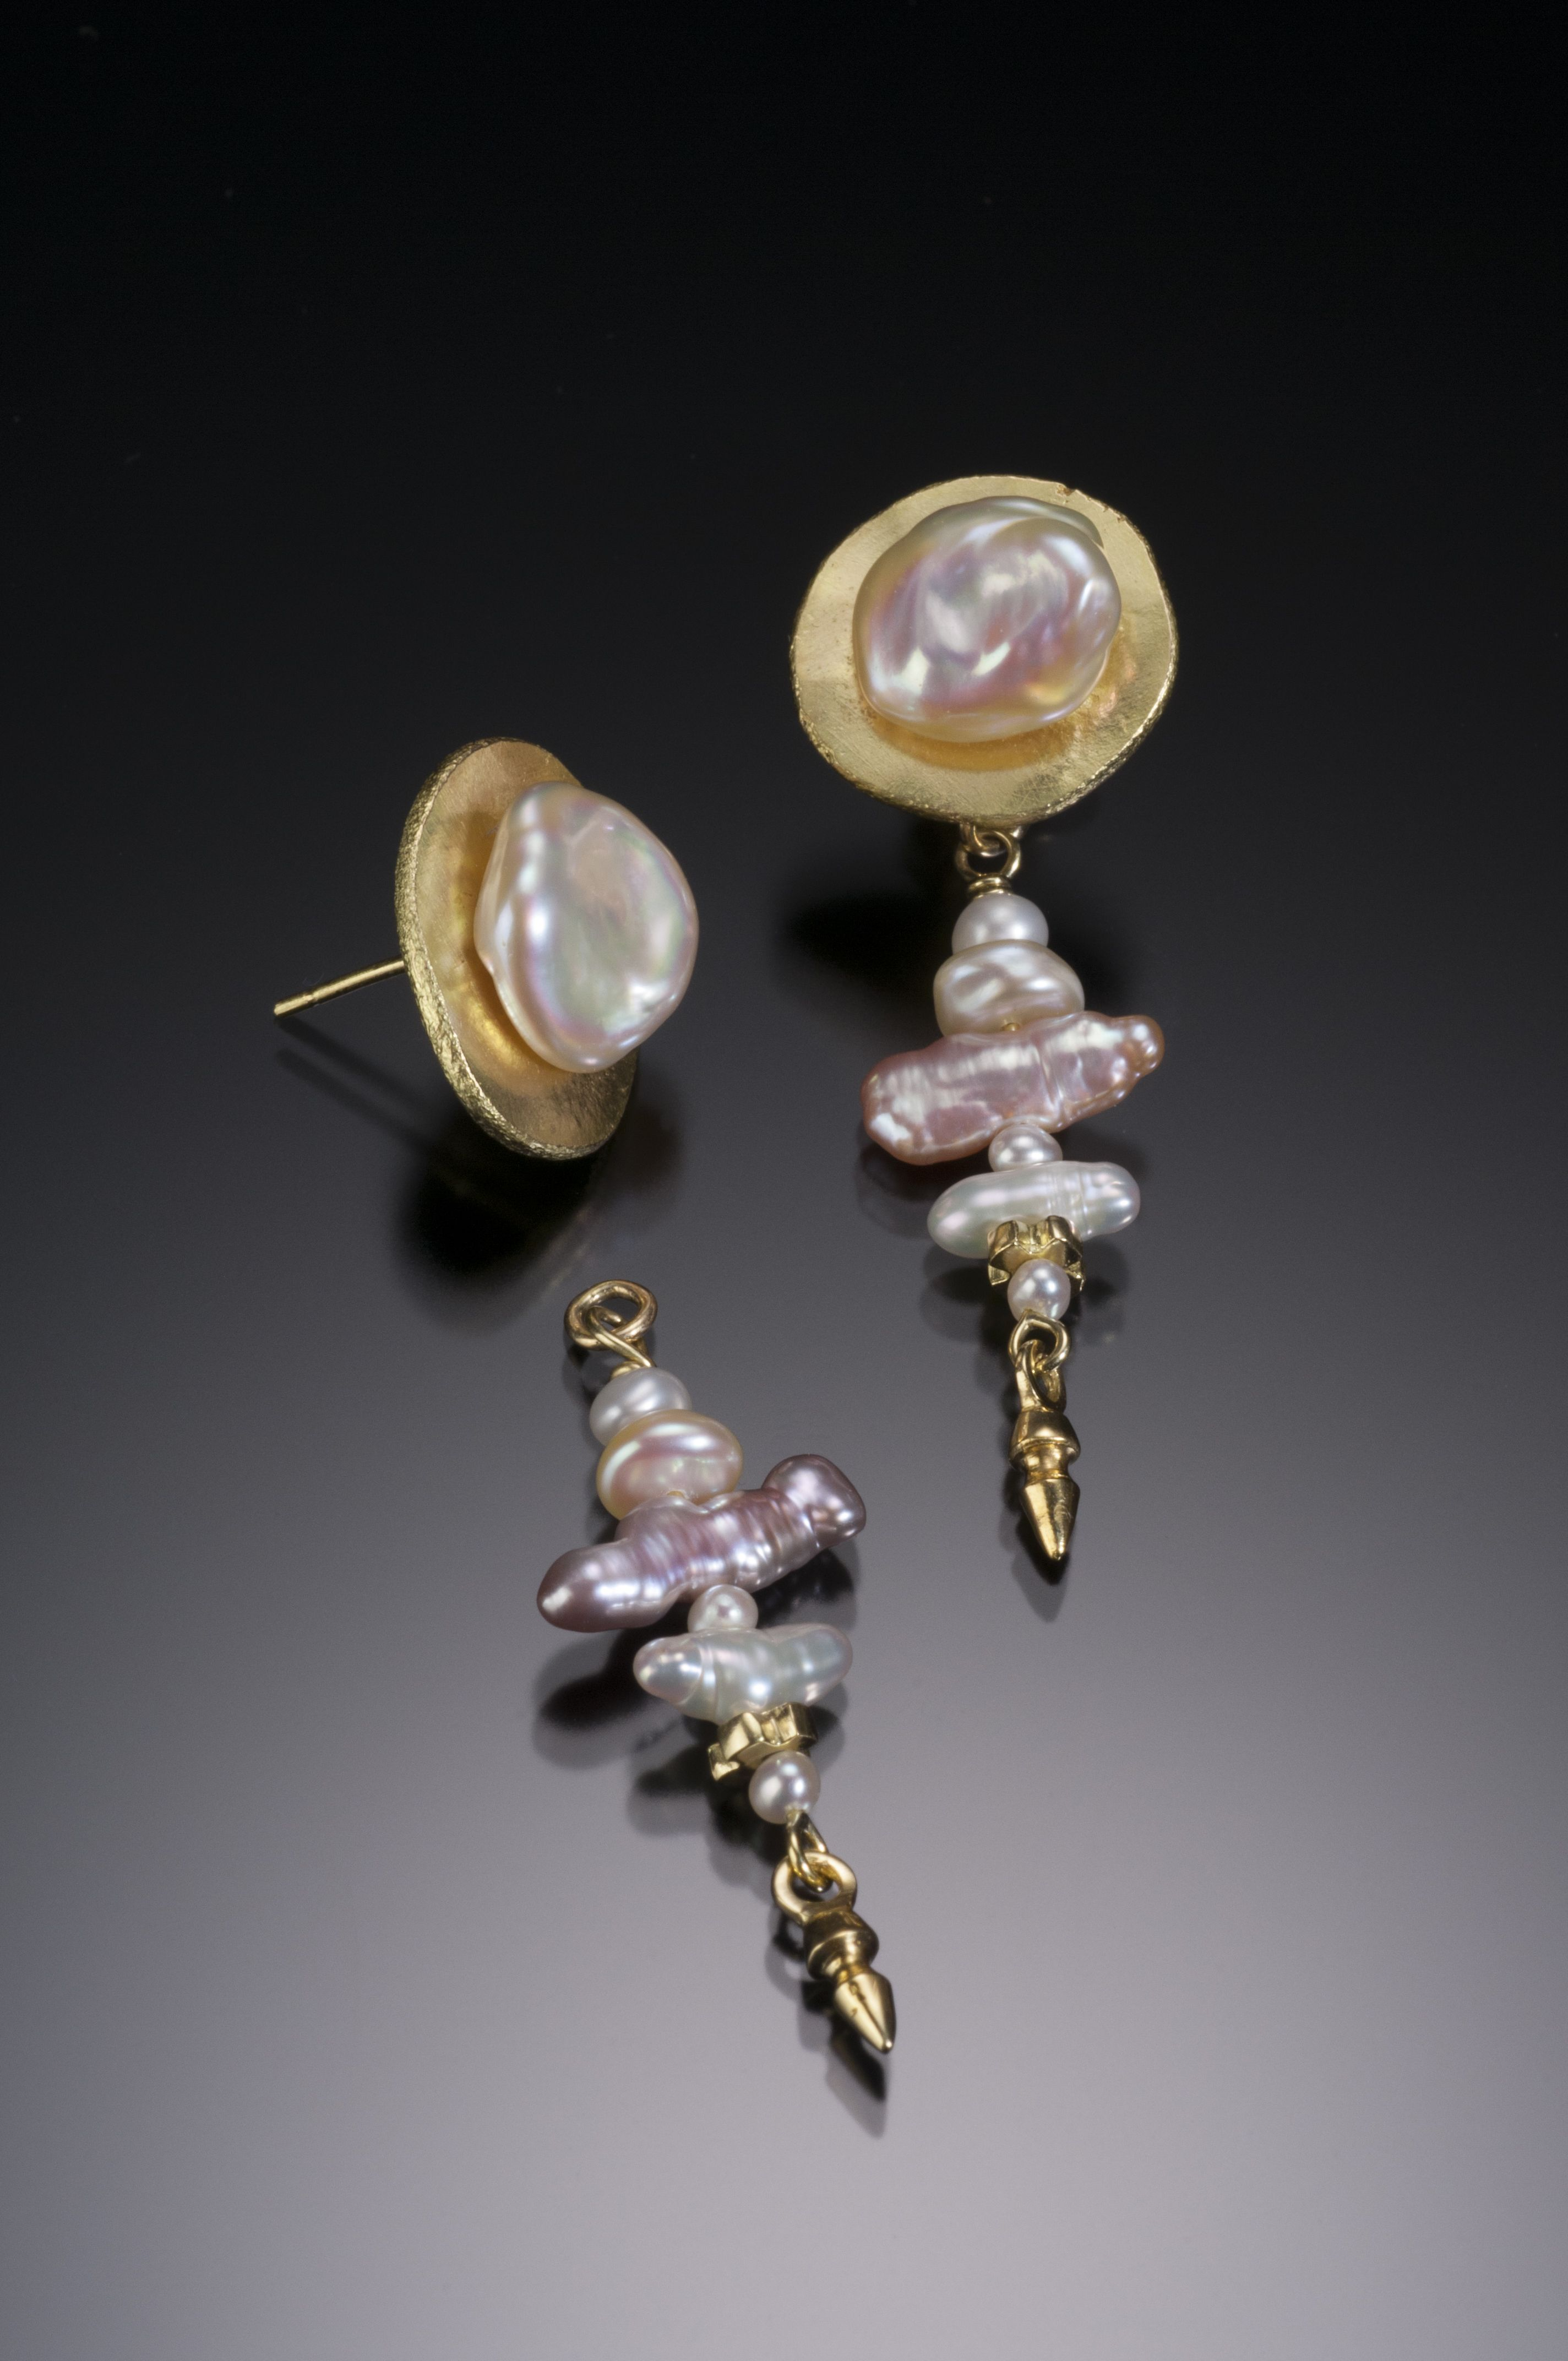 Just like you, one of a kind, 18K gold and fresh water pearls for the gal on the go!